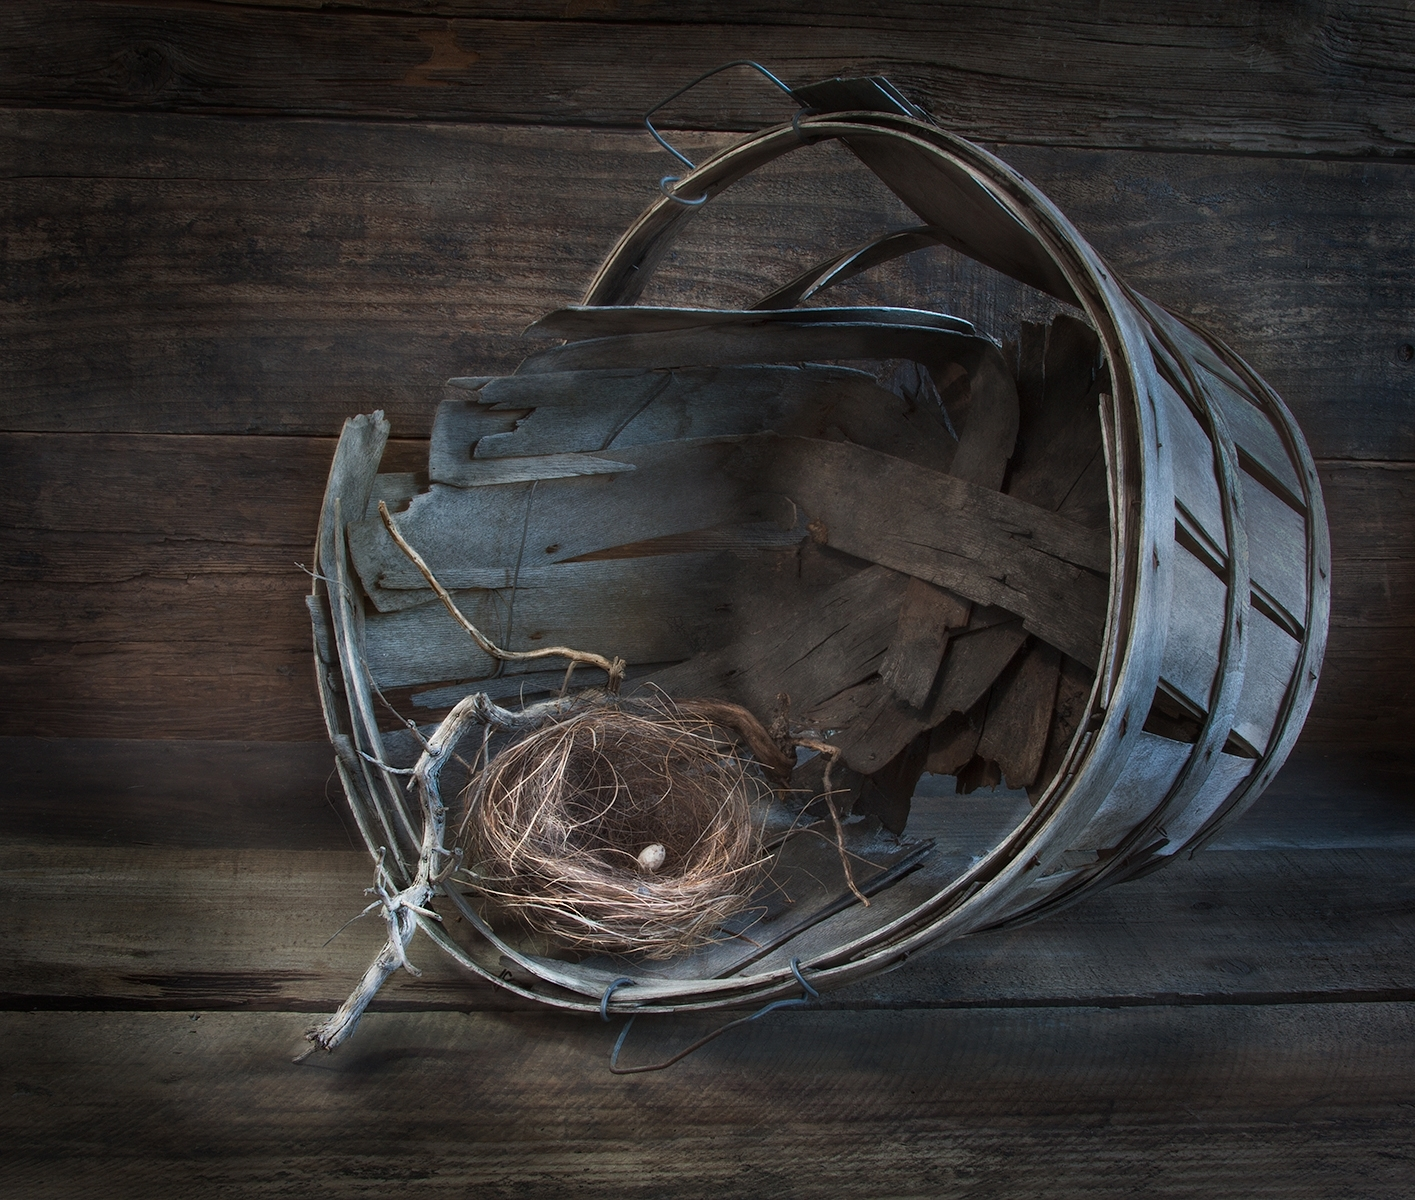 'Bird Nest and Old Sticks and Basket' (PM Best in Show) by Claudia Peterson - SC